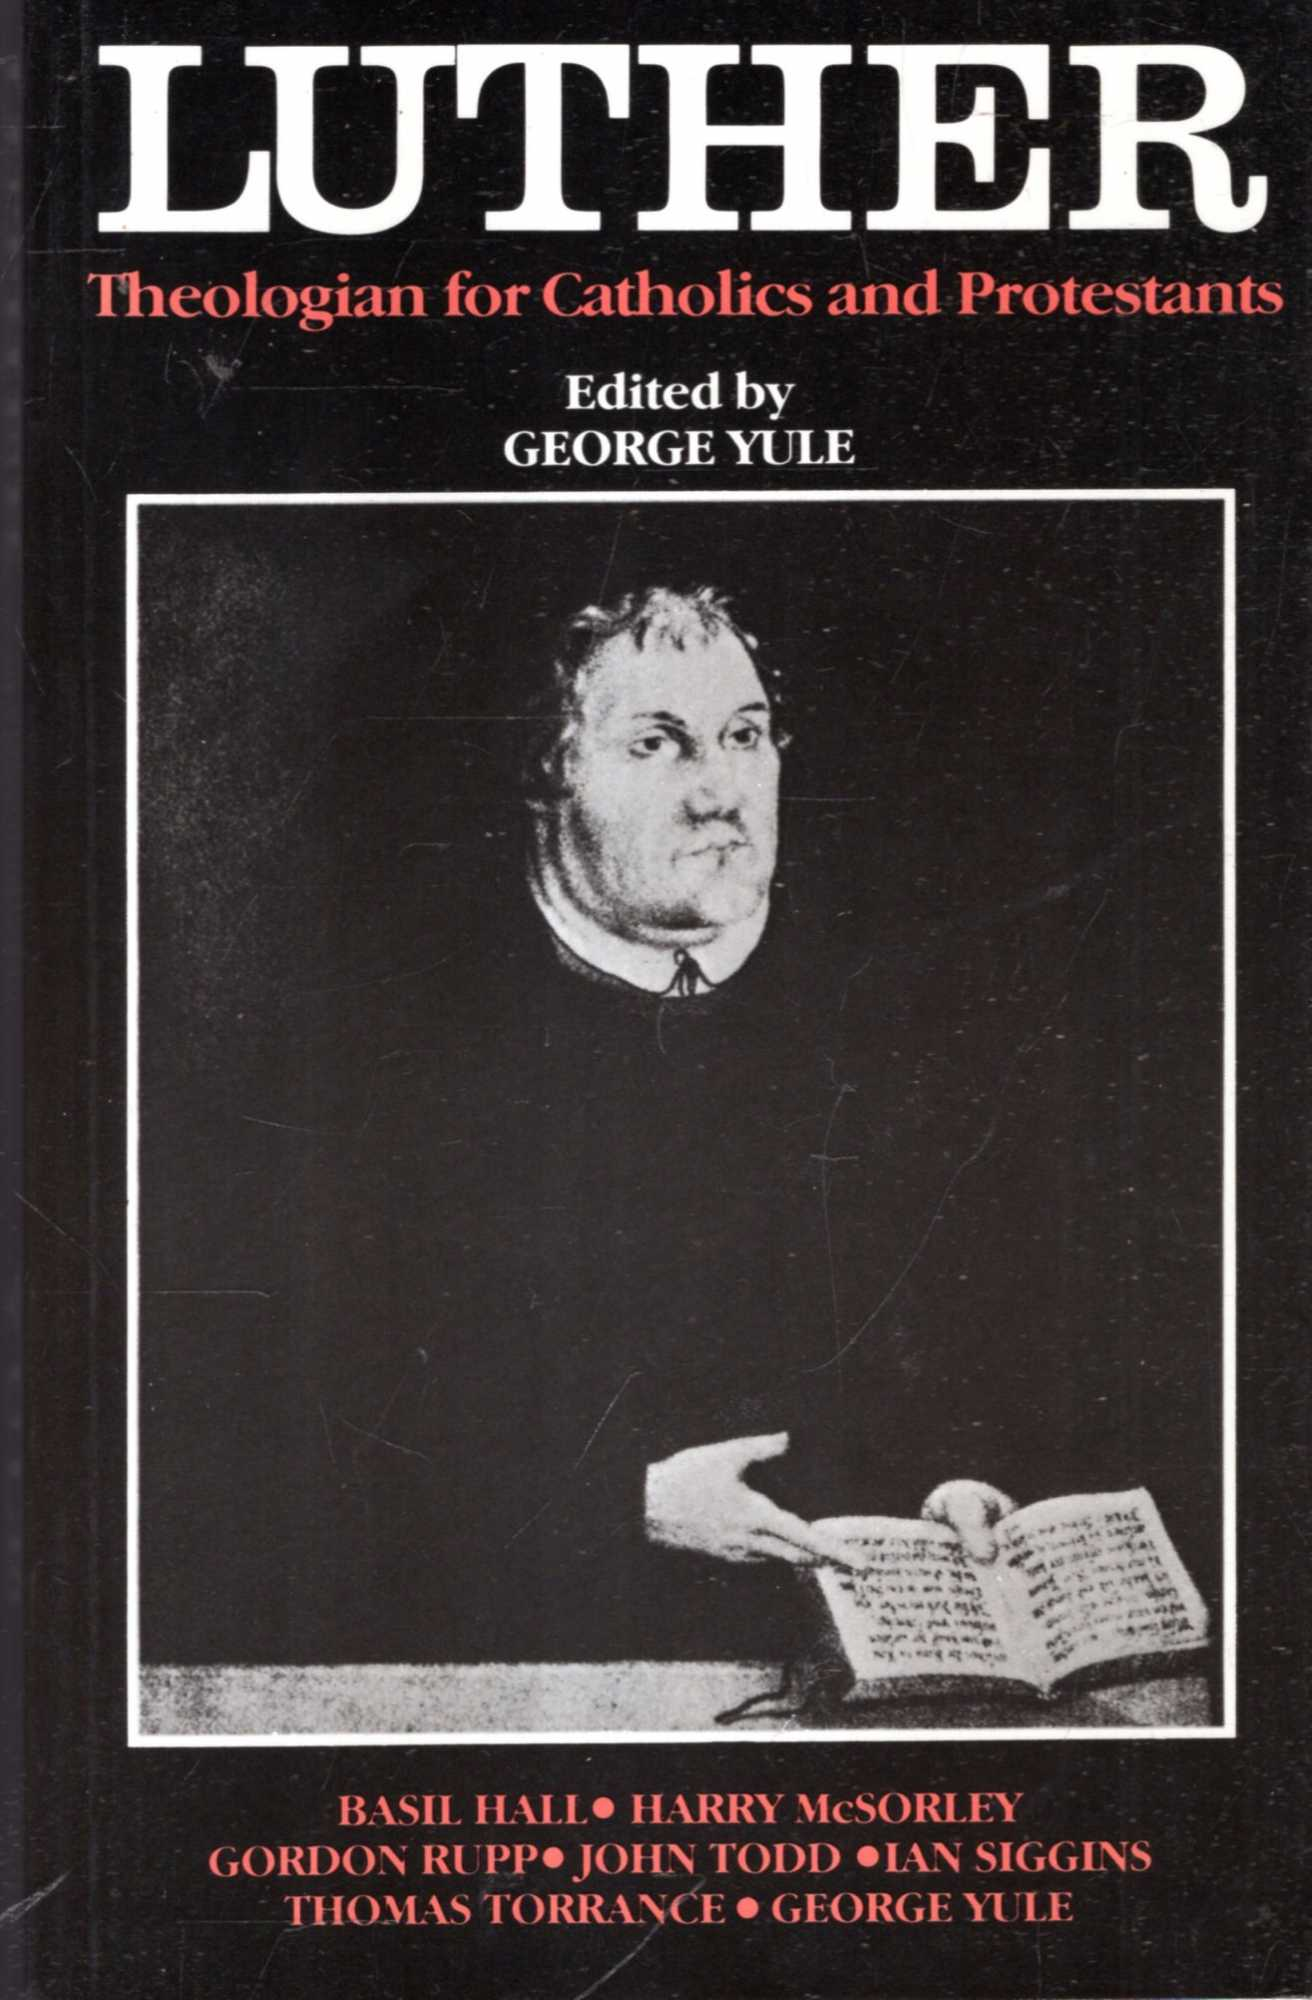 Image for Luther: Theologian for Catholics and Protestants